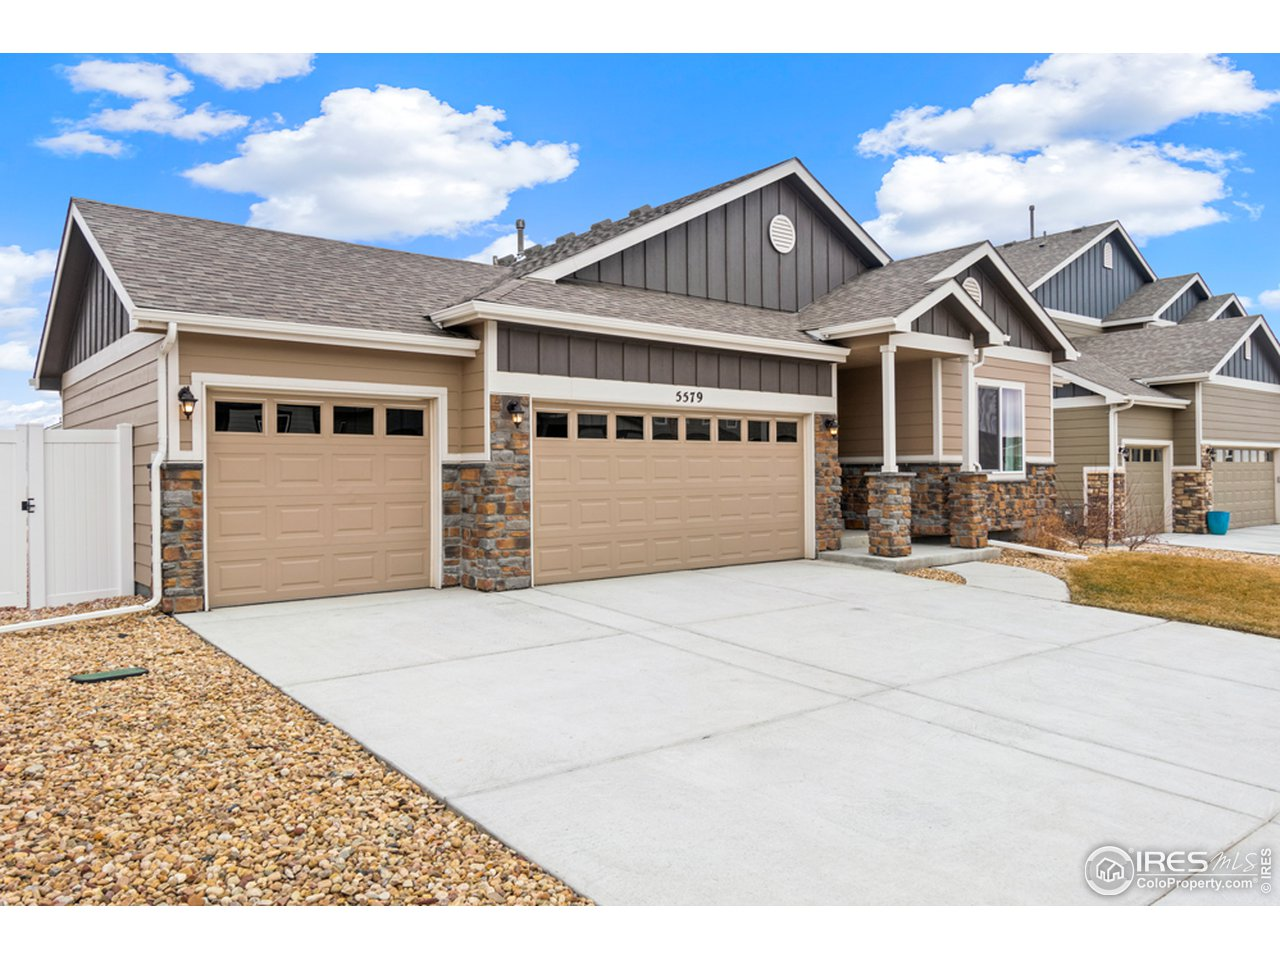 Three car garage, with door to back yard and extra concrete pad at backdoor.